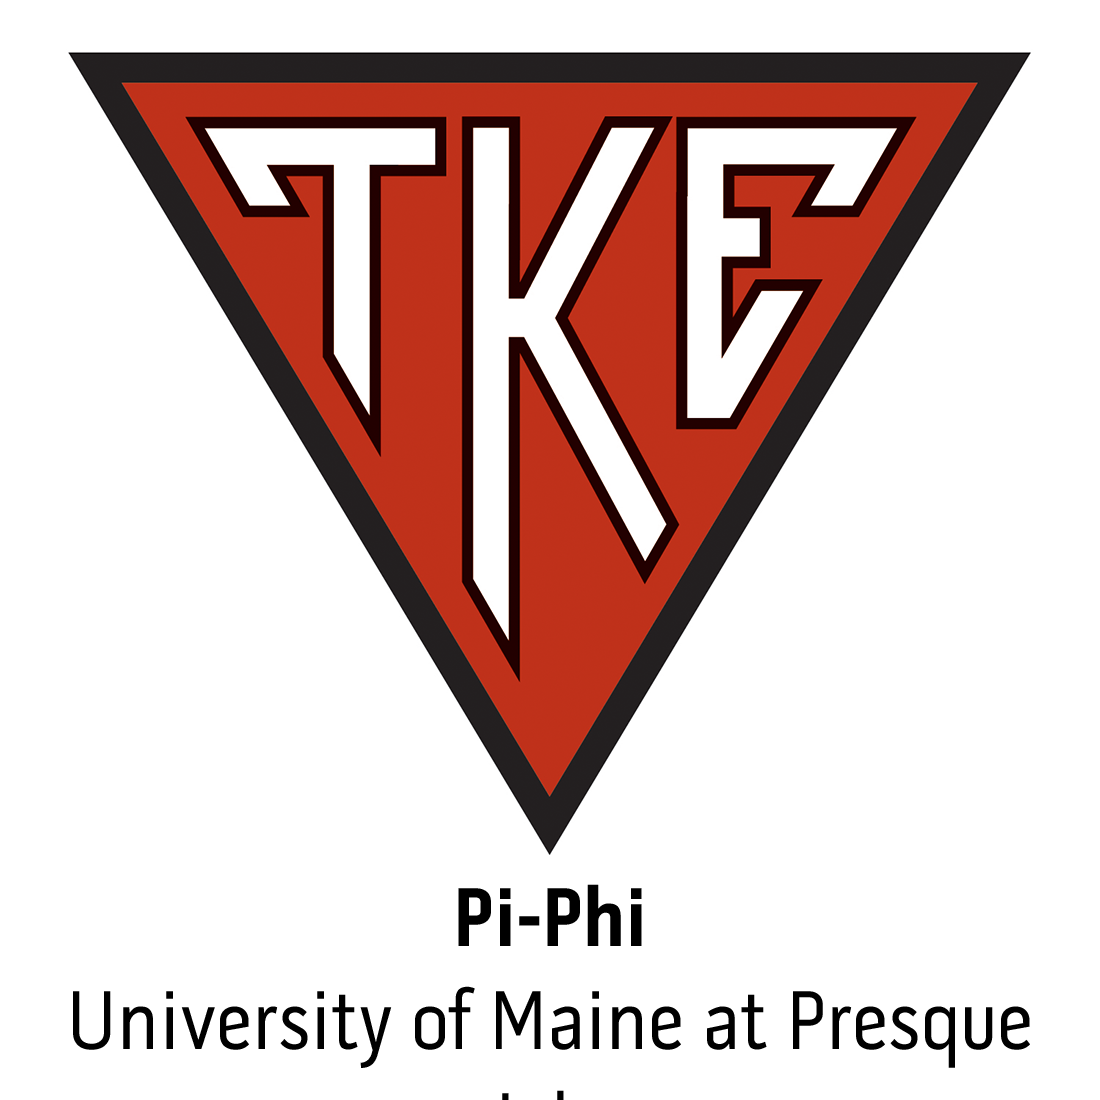 Pi-Phi Chapter at University of Maine at Presque Isle